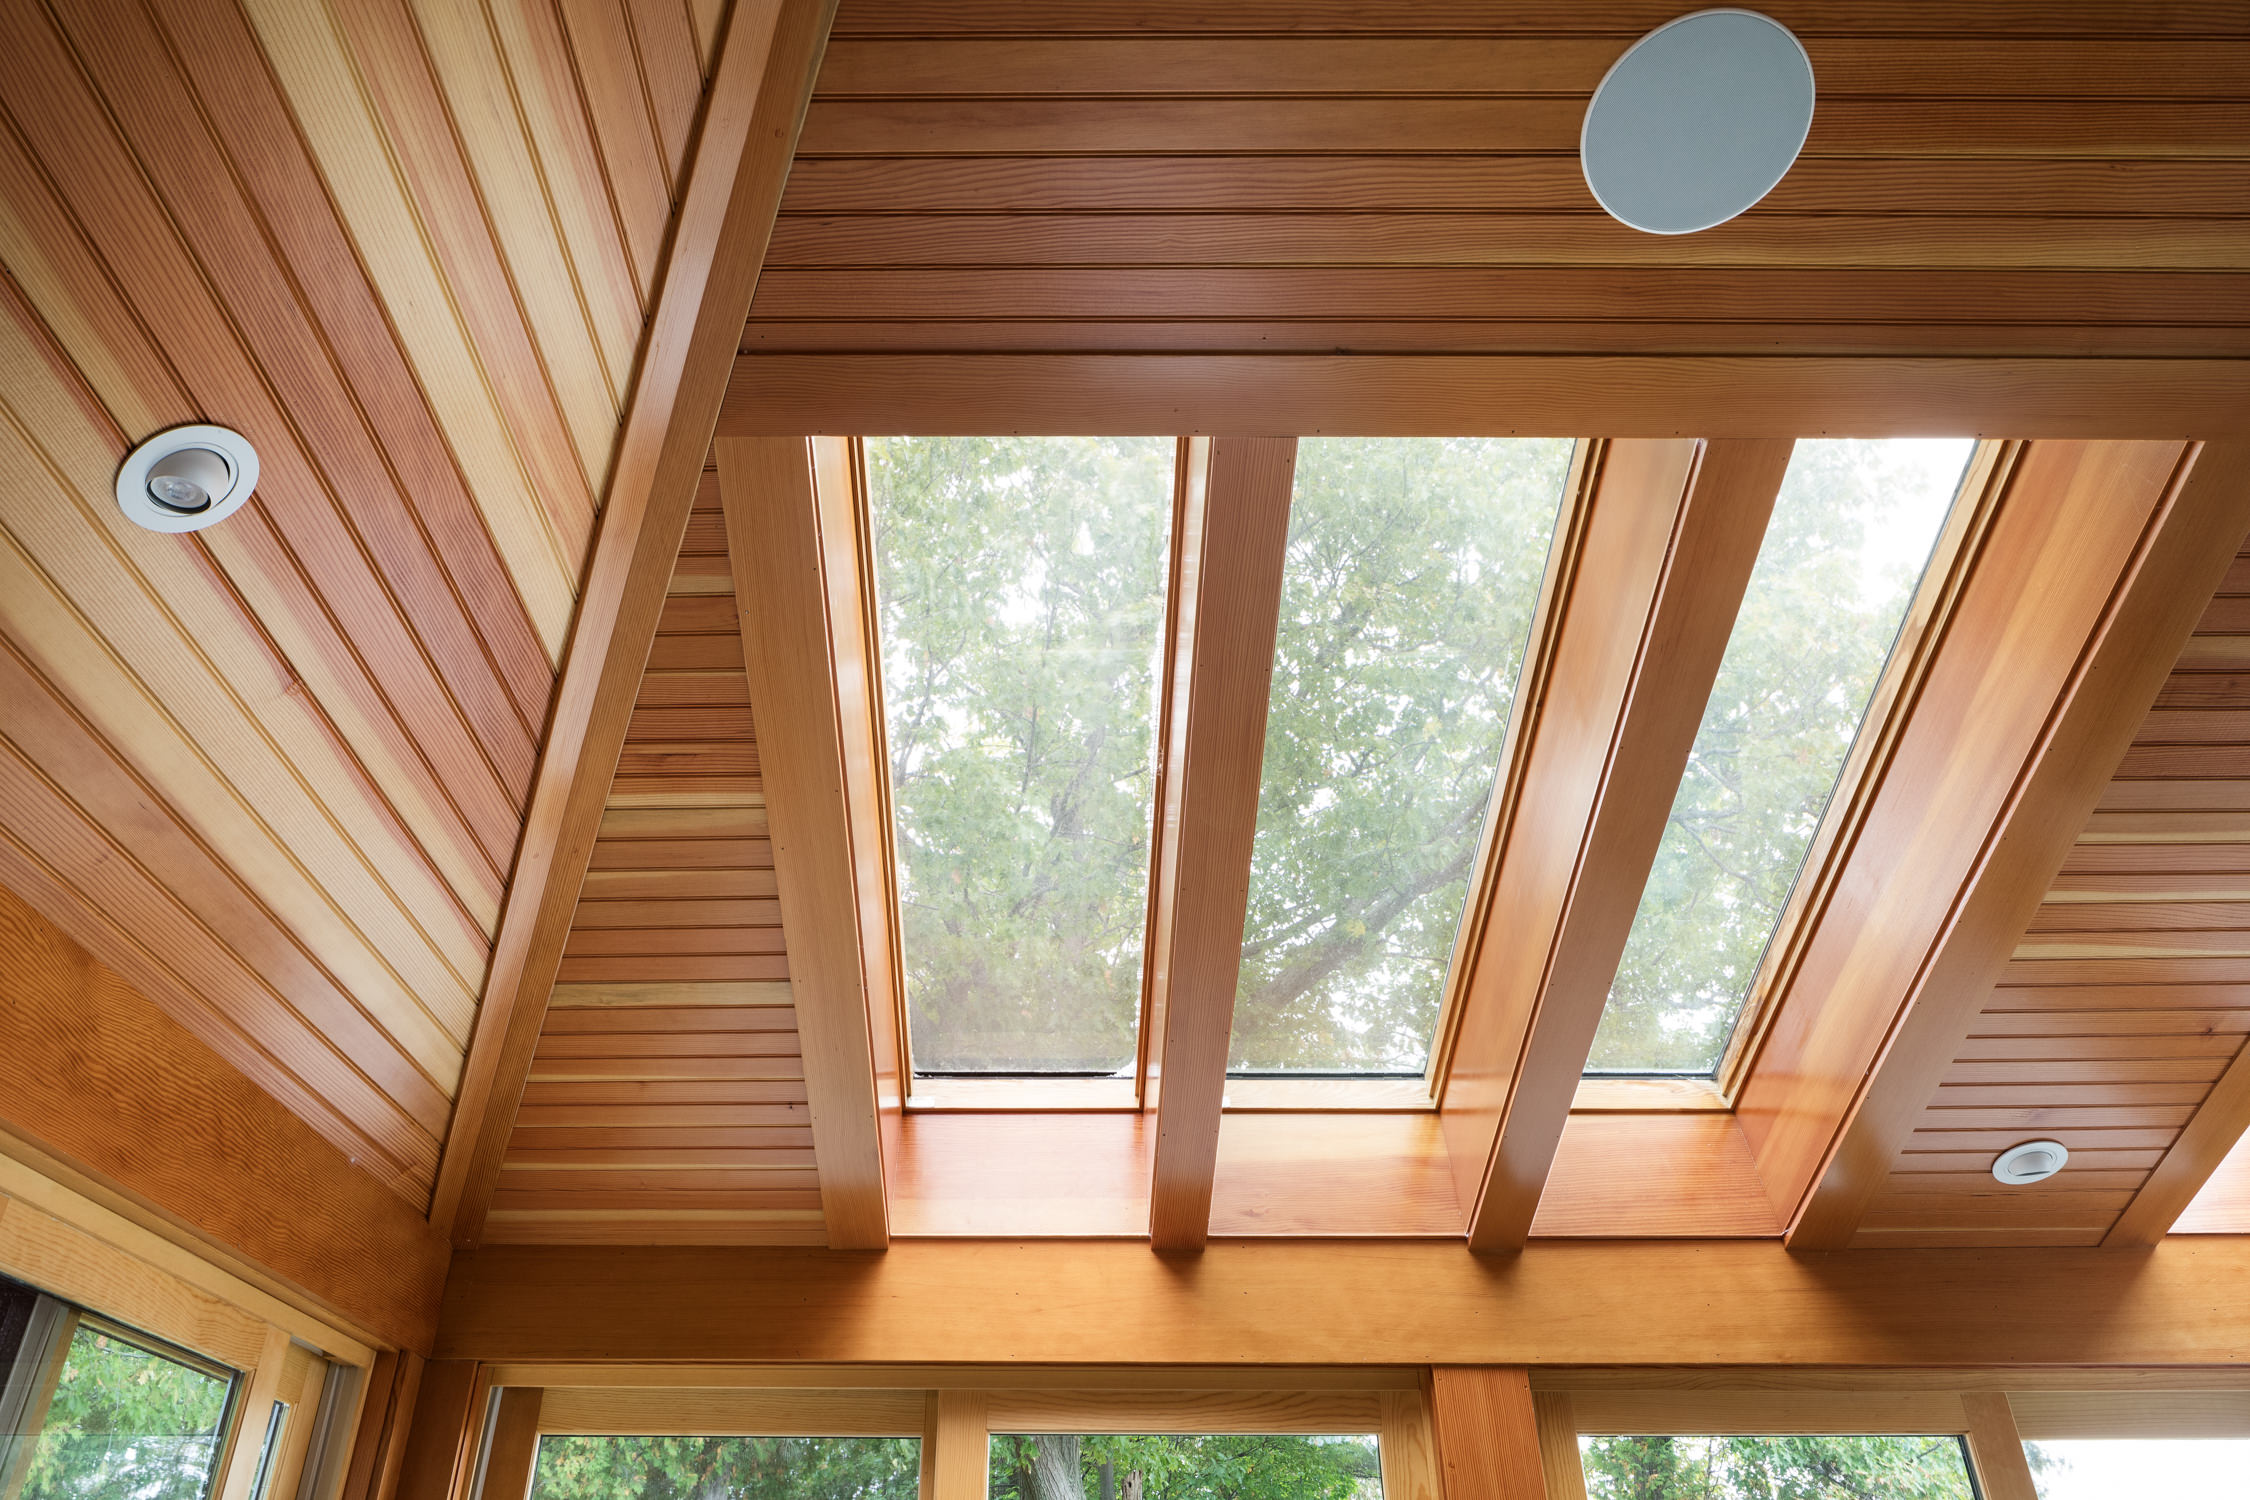 Photo of the wood paneled ceiling and skylights in a home renovation by Wiemann Lamphere Architects and photographed by Vermont photographer Stina Booth of Studio SB.,